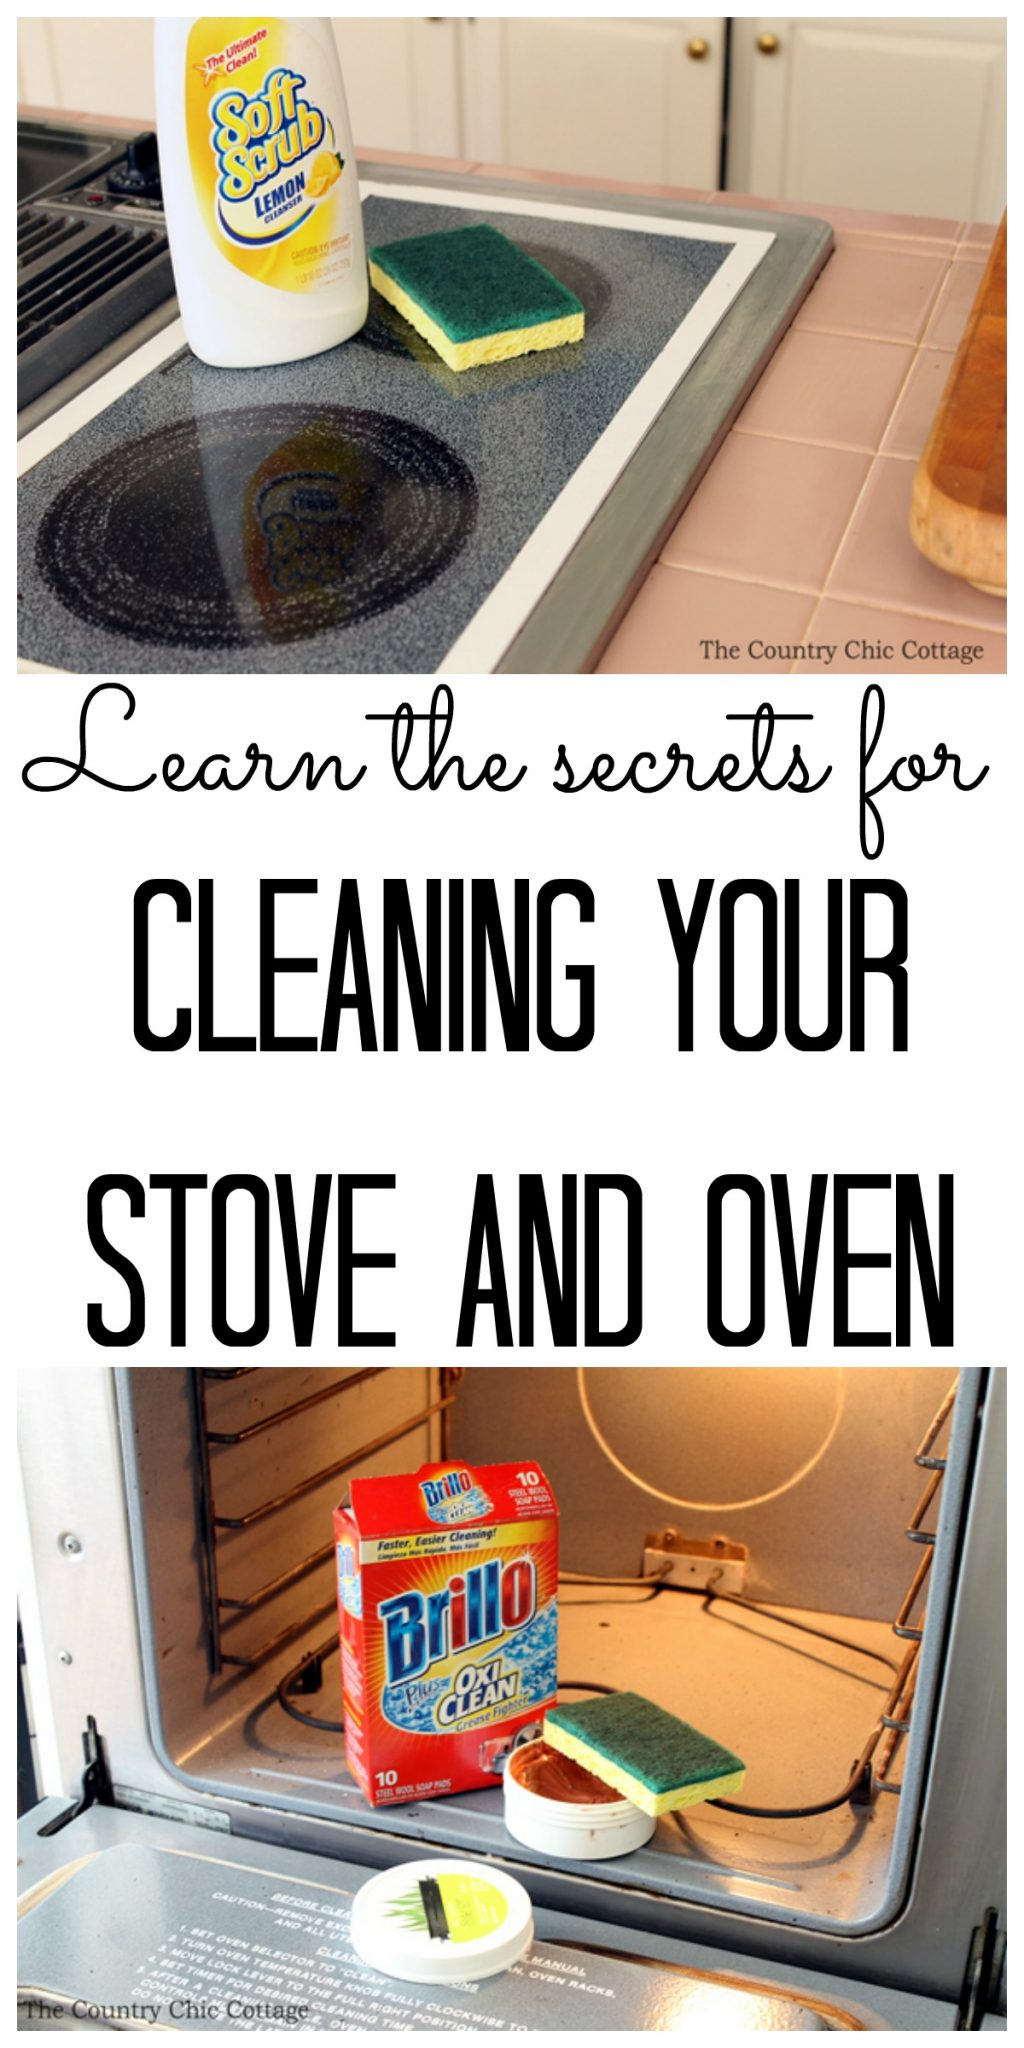 cleaning you stove and oven collage